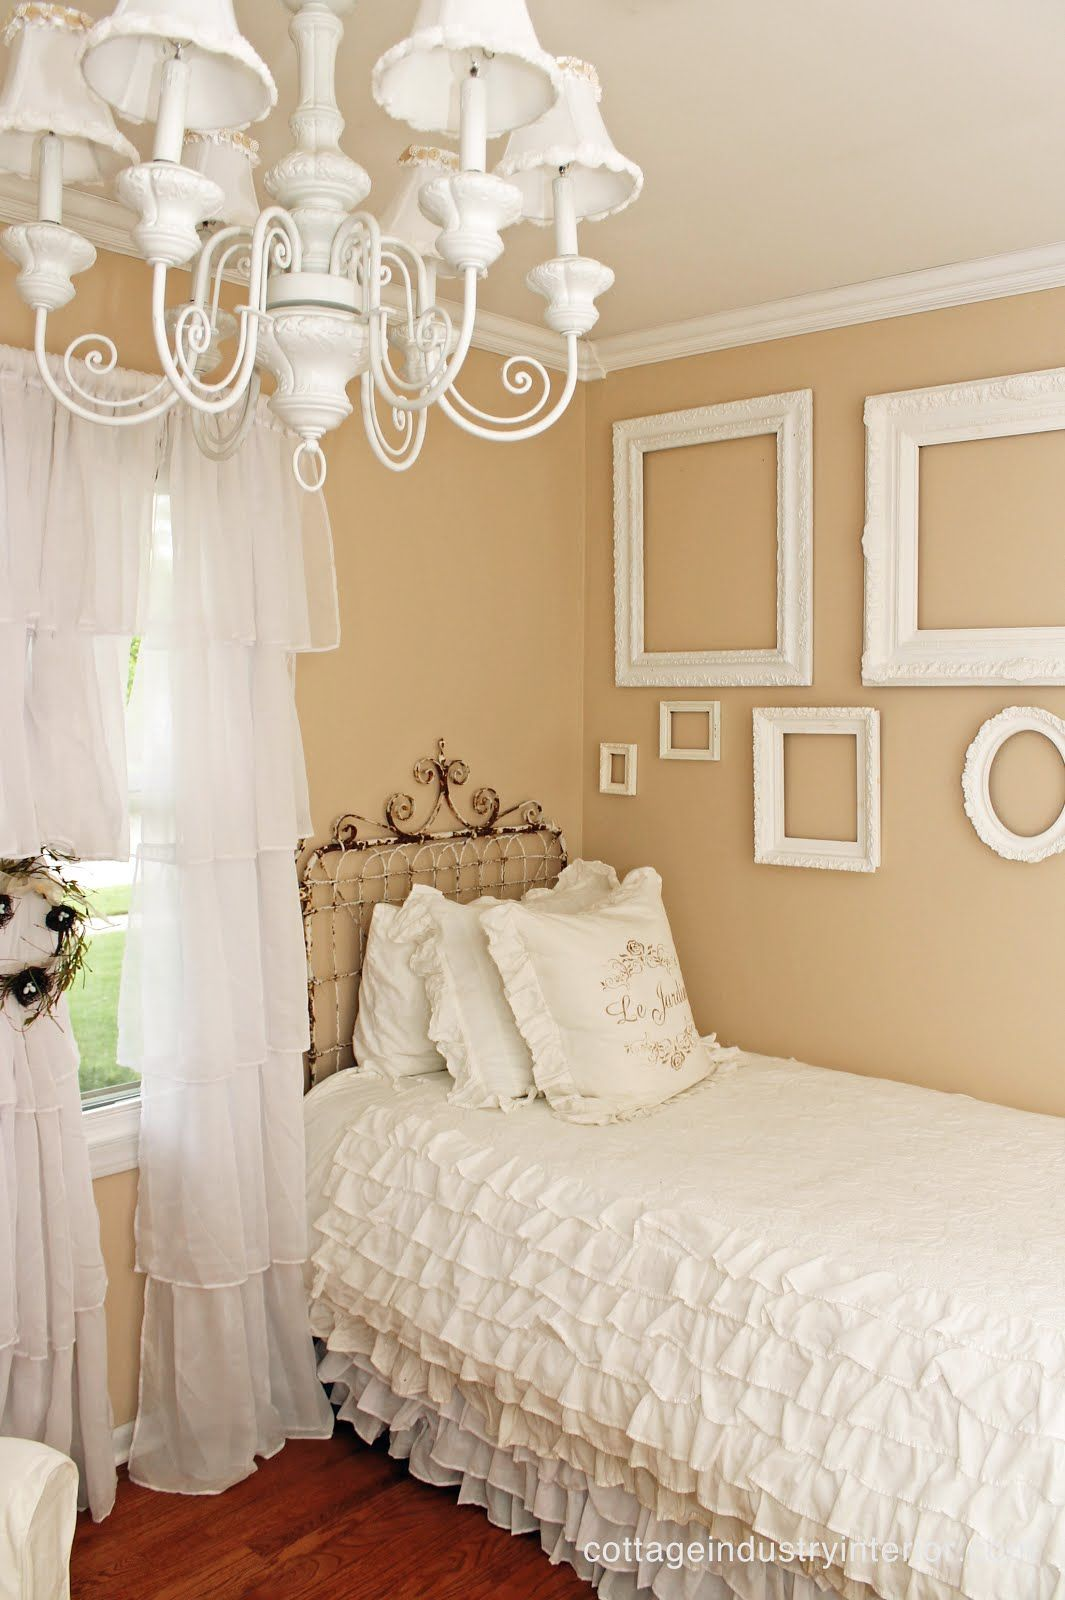 junk chic cottage ruffle curtains from target and love empty white frames